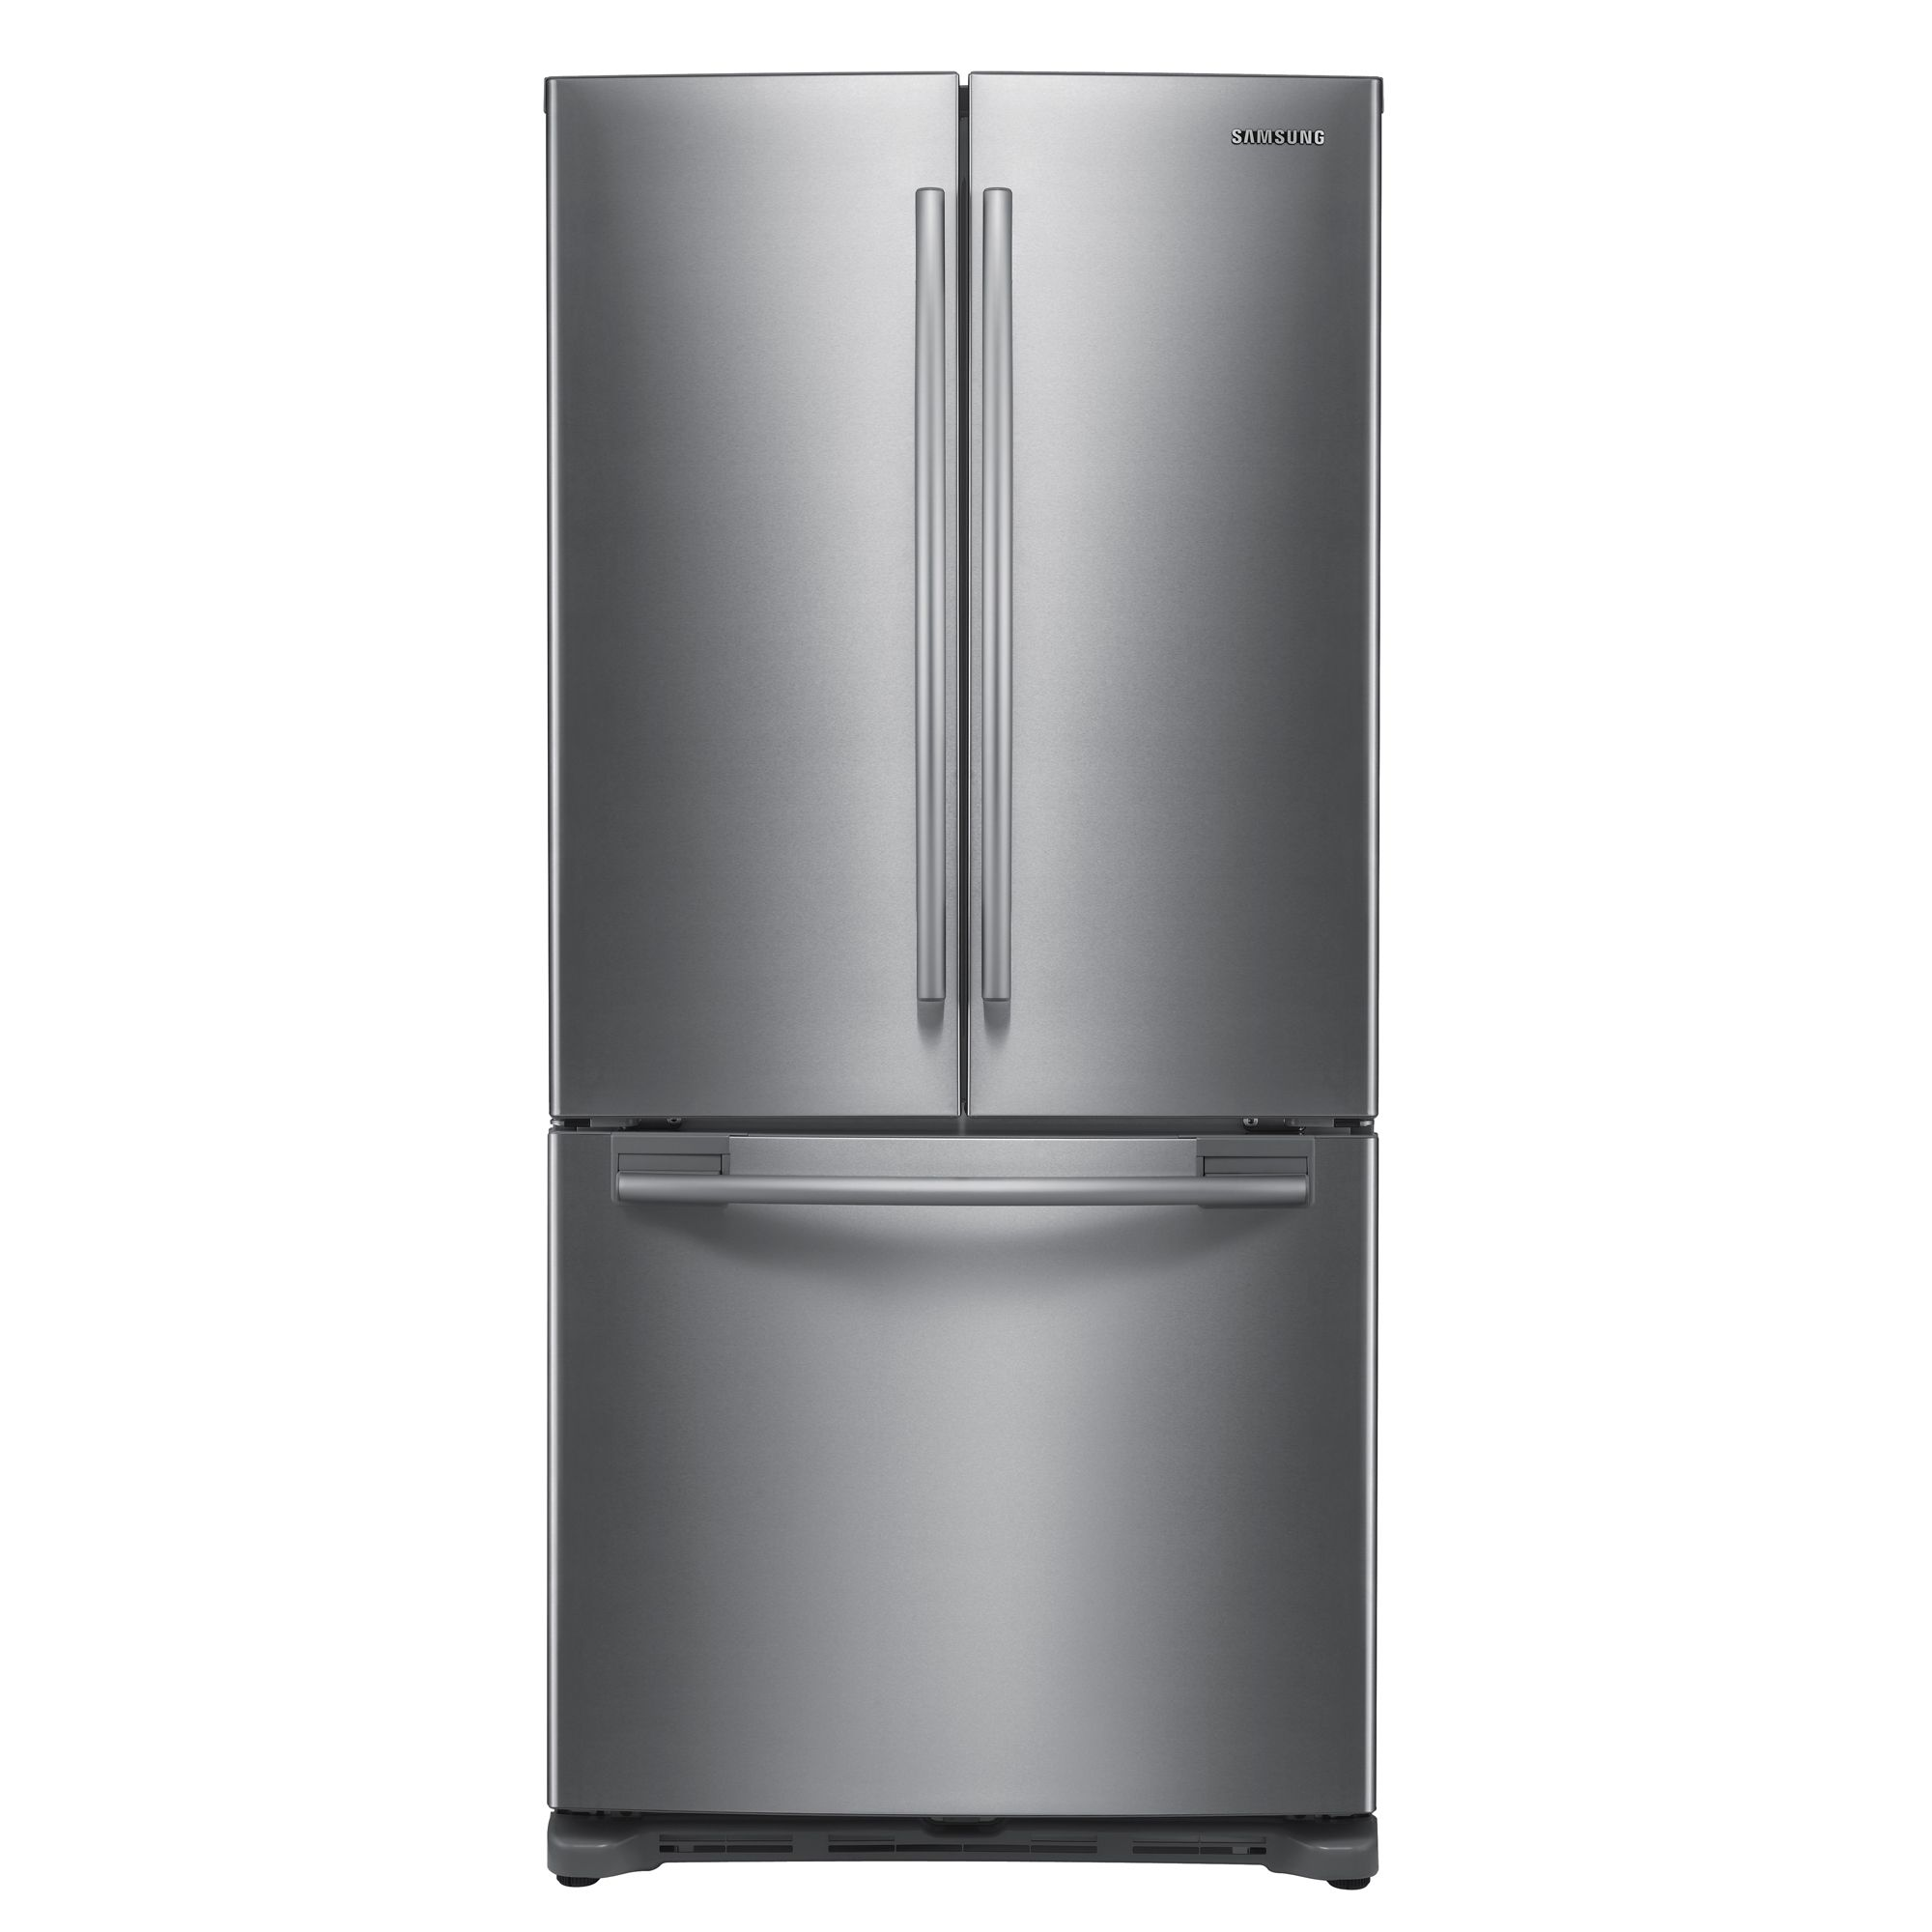 20.0 cu. ft. French-Door Bottom-Freezer Refrigerator